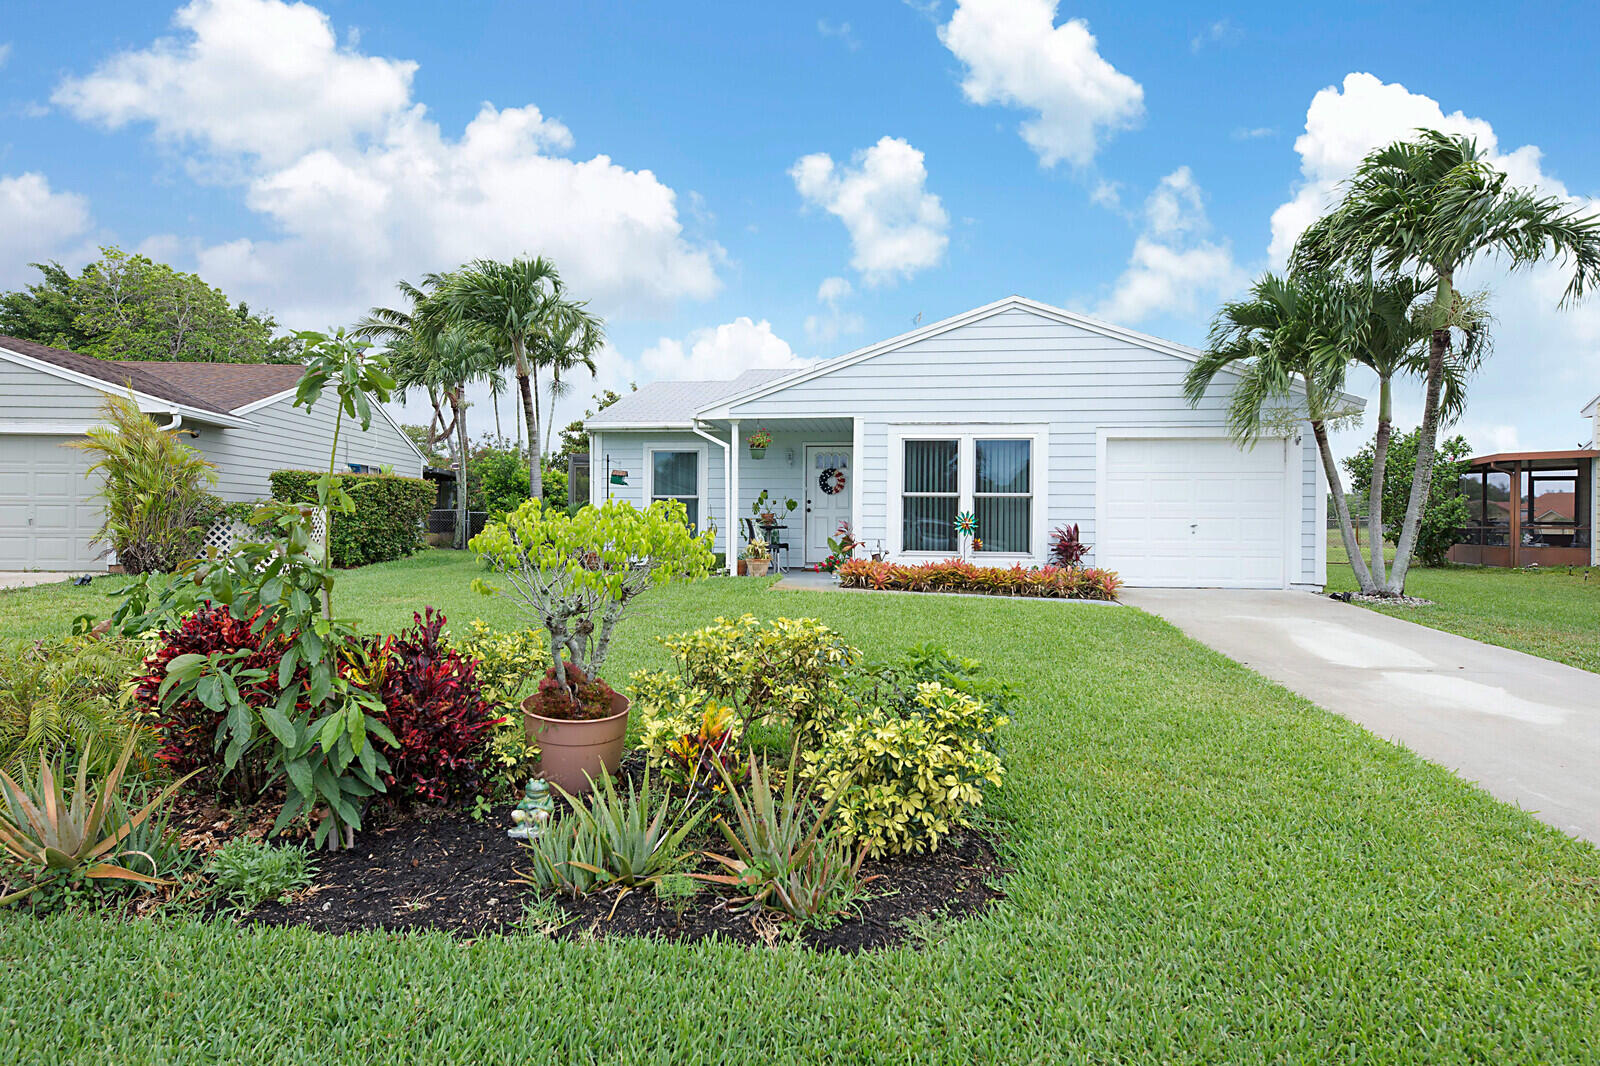 5420  Courtney Circle  For Sale 10717862, FL